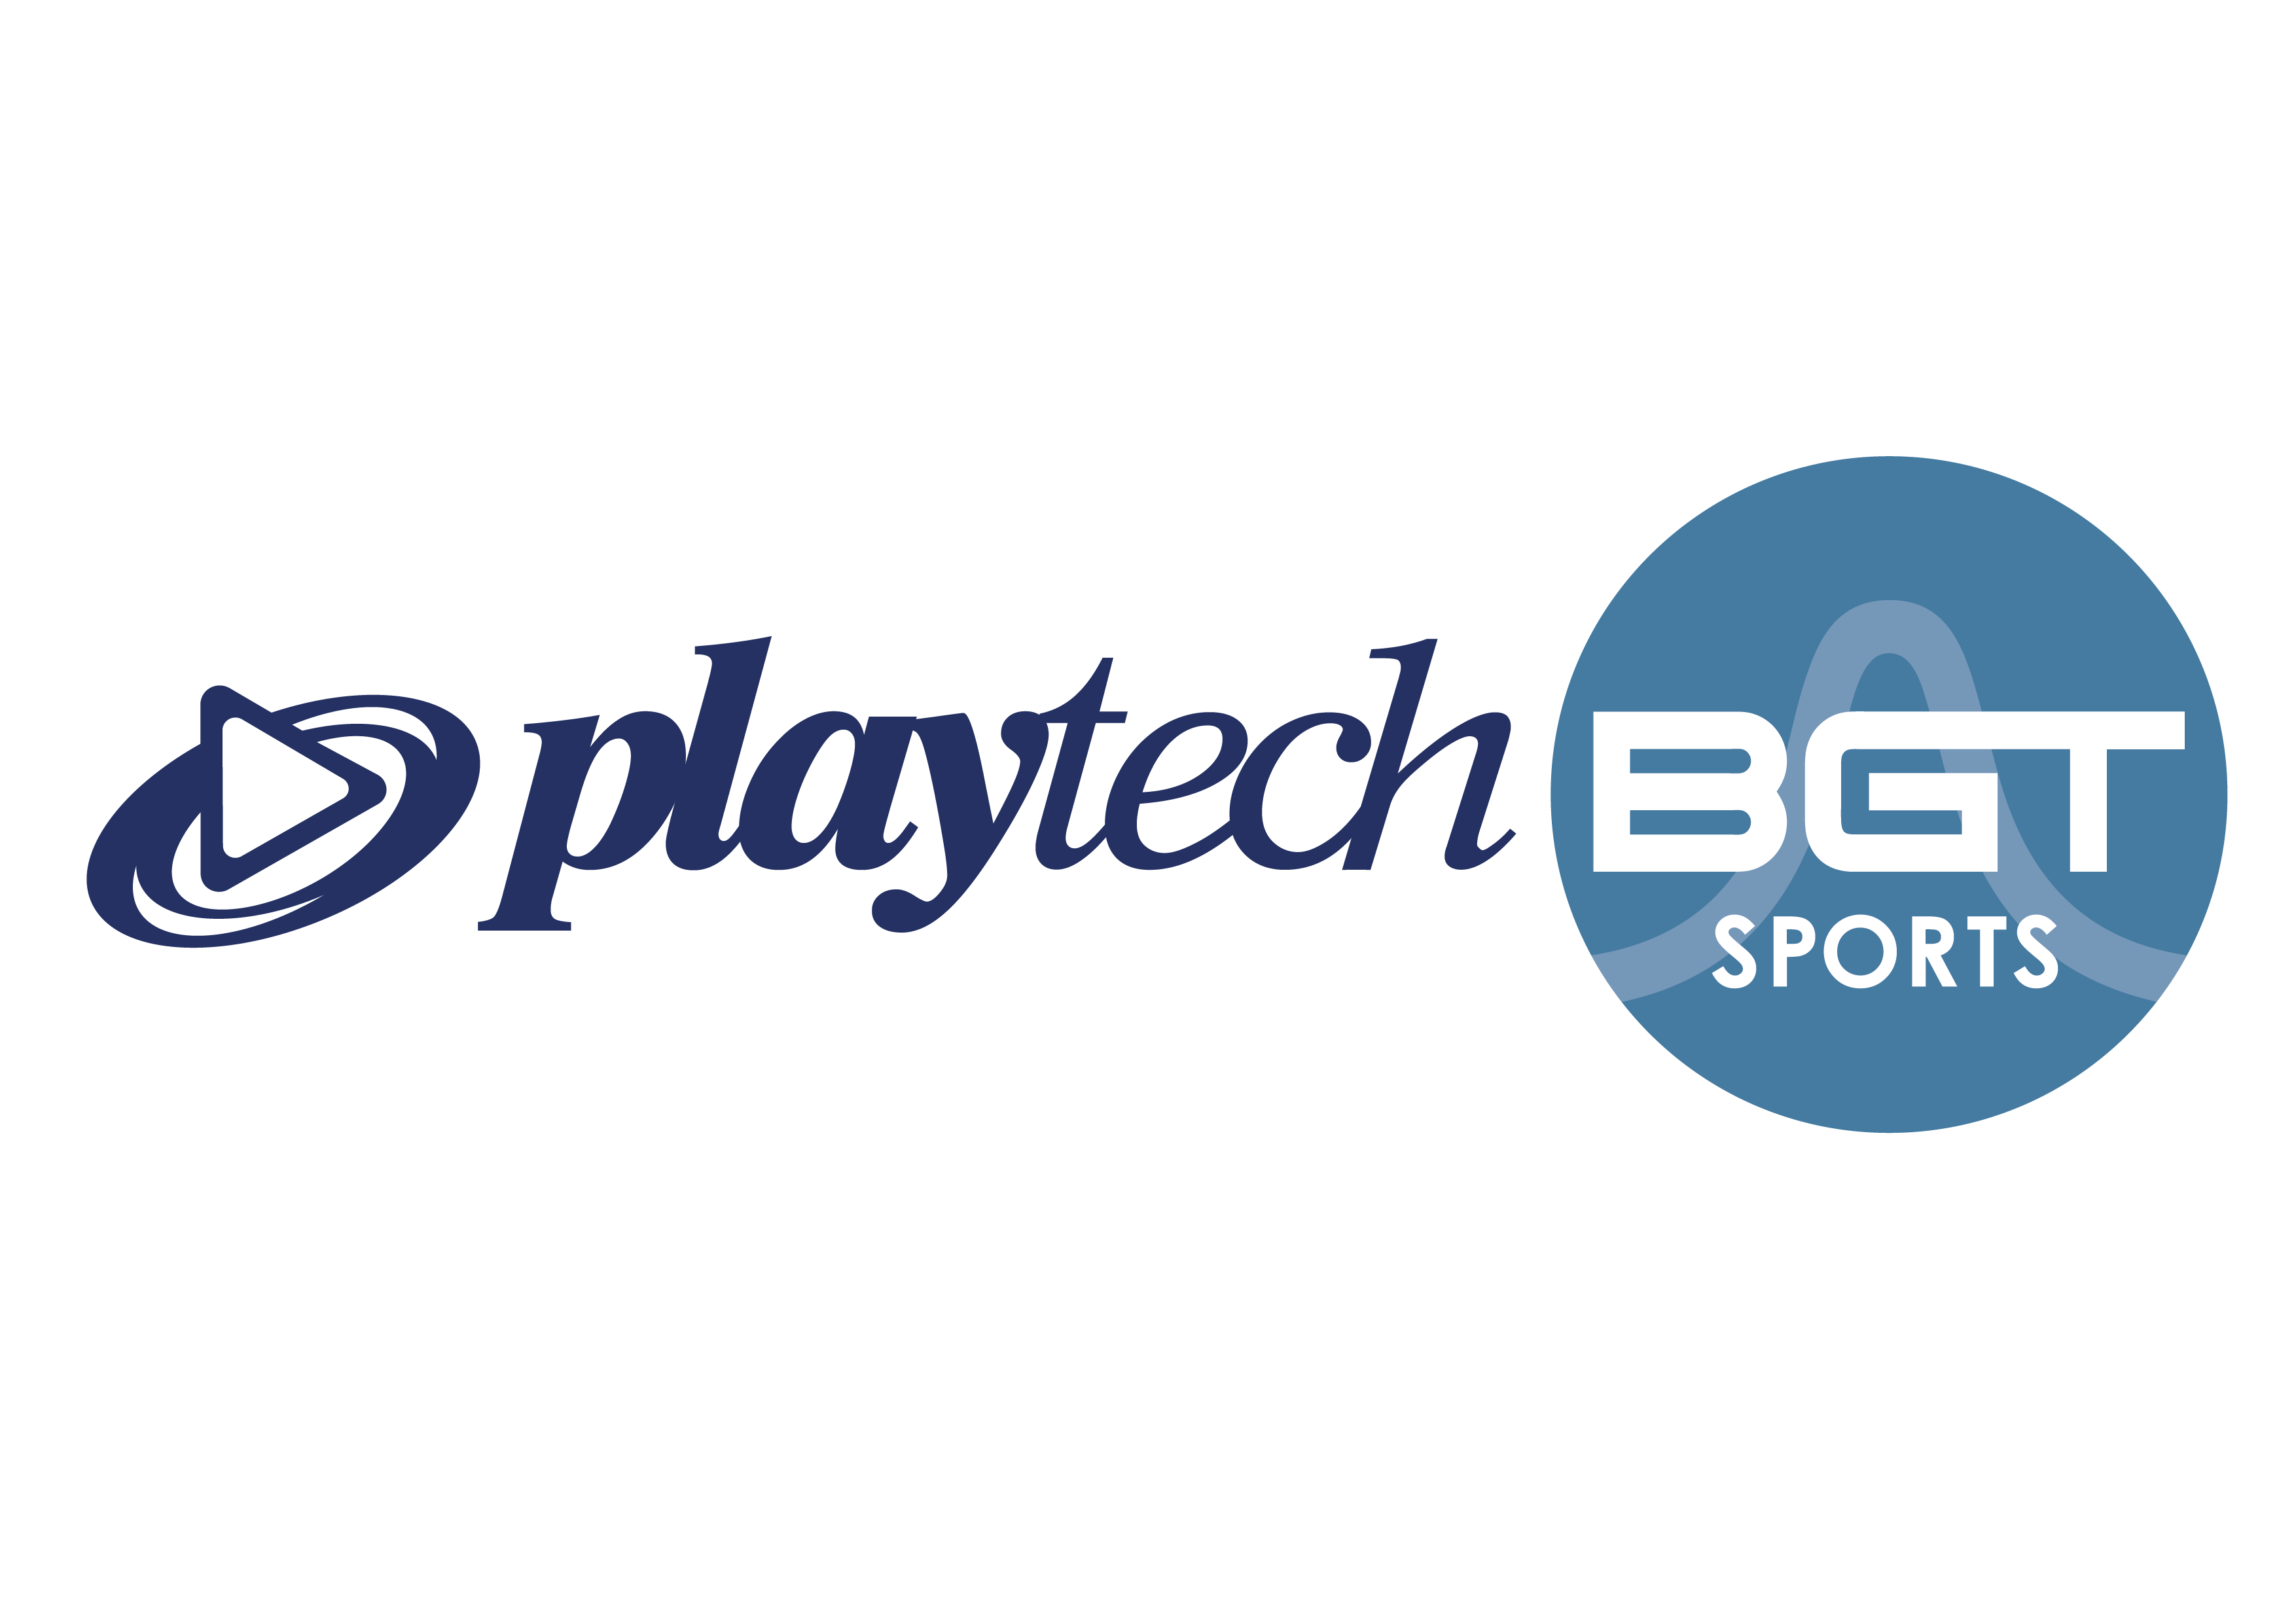 44.Playtech BGT Sports Ltd